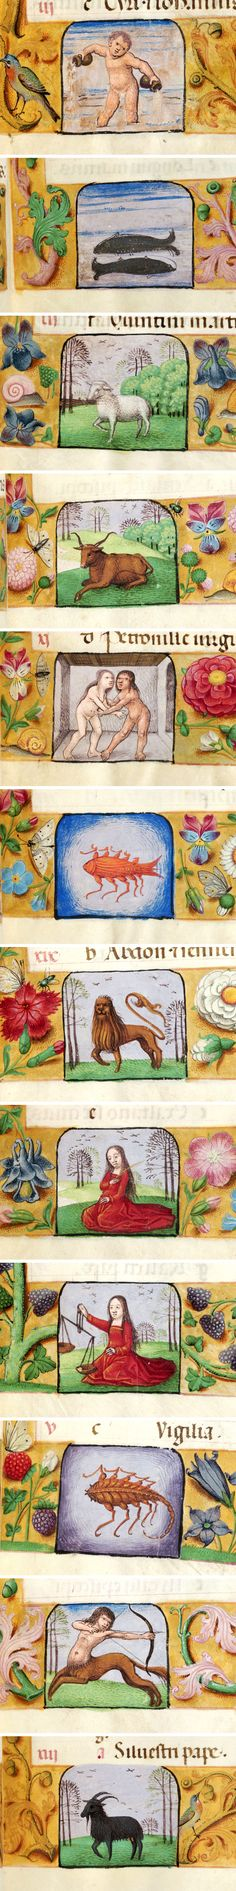 Signs of the Zodiac | Book of Hours | Belgium, Bruges | between 1500 and 1526 | The Morgan Library & Musuem